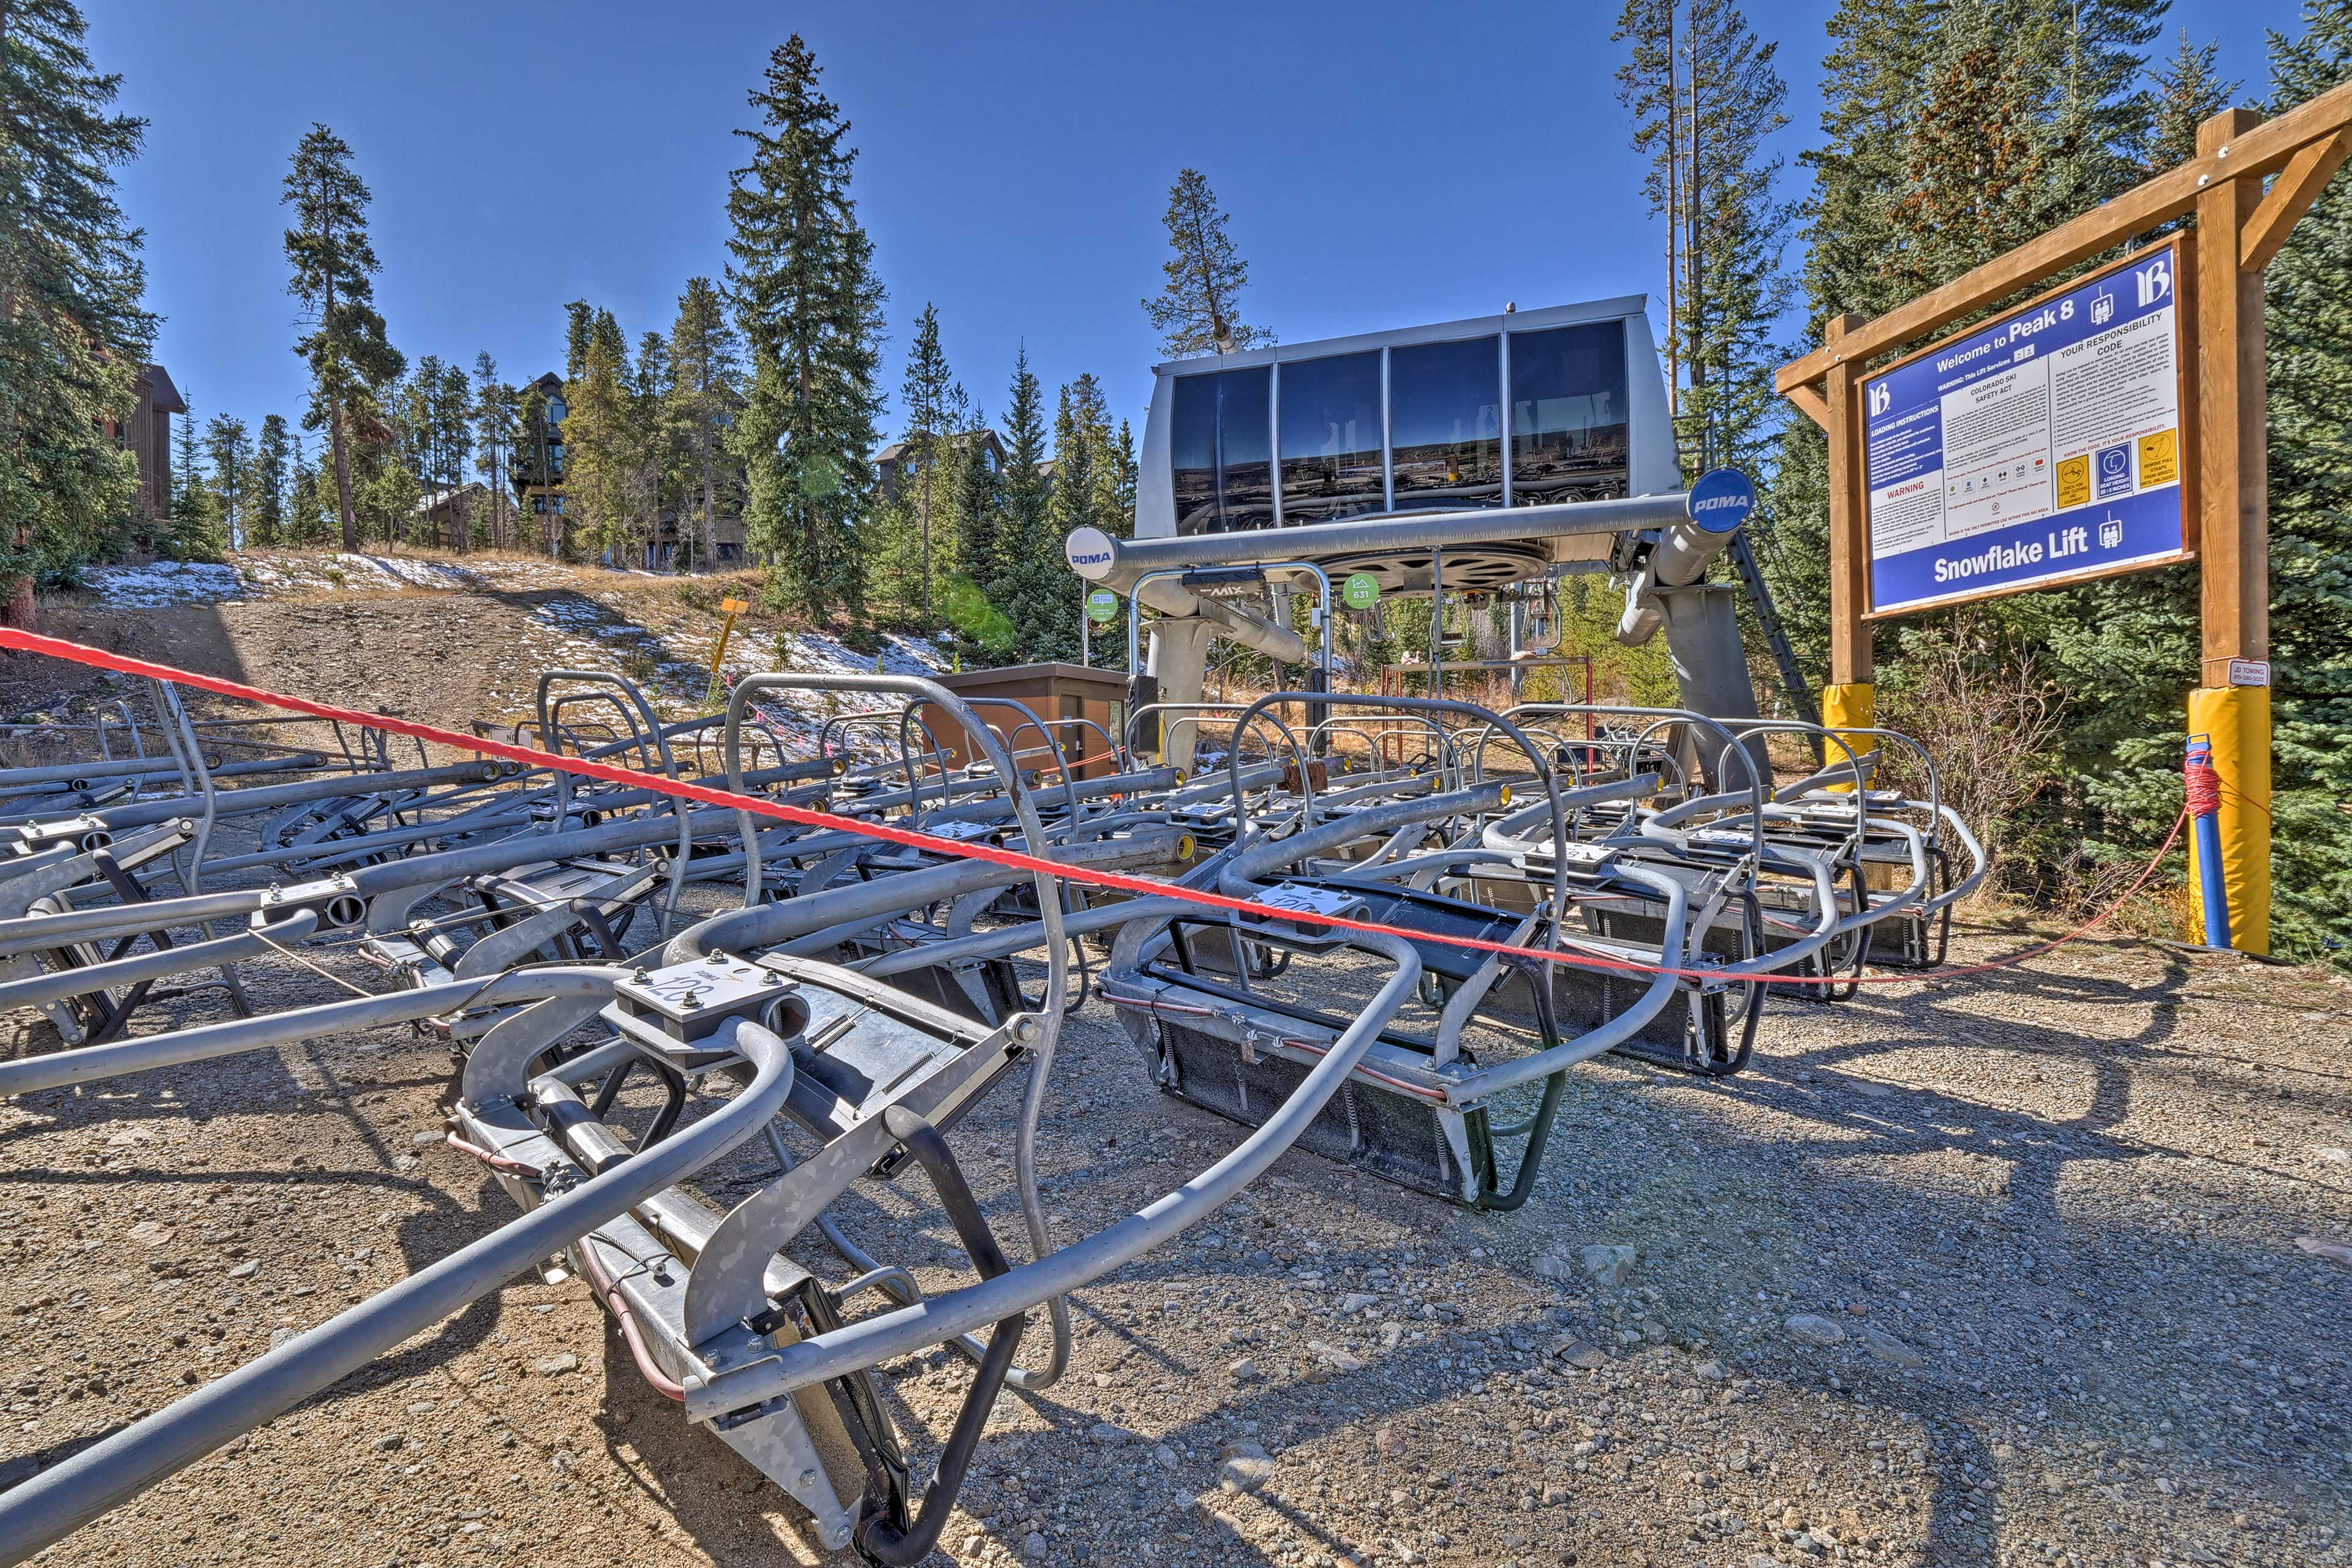 The property is walking distance from Snowflake Chair lift!